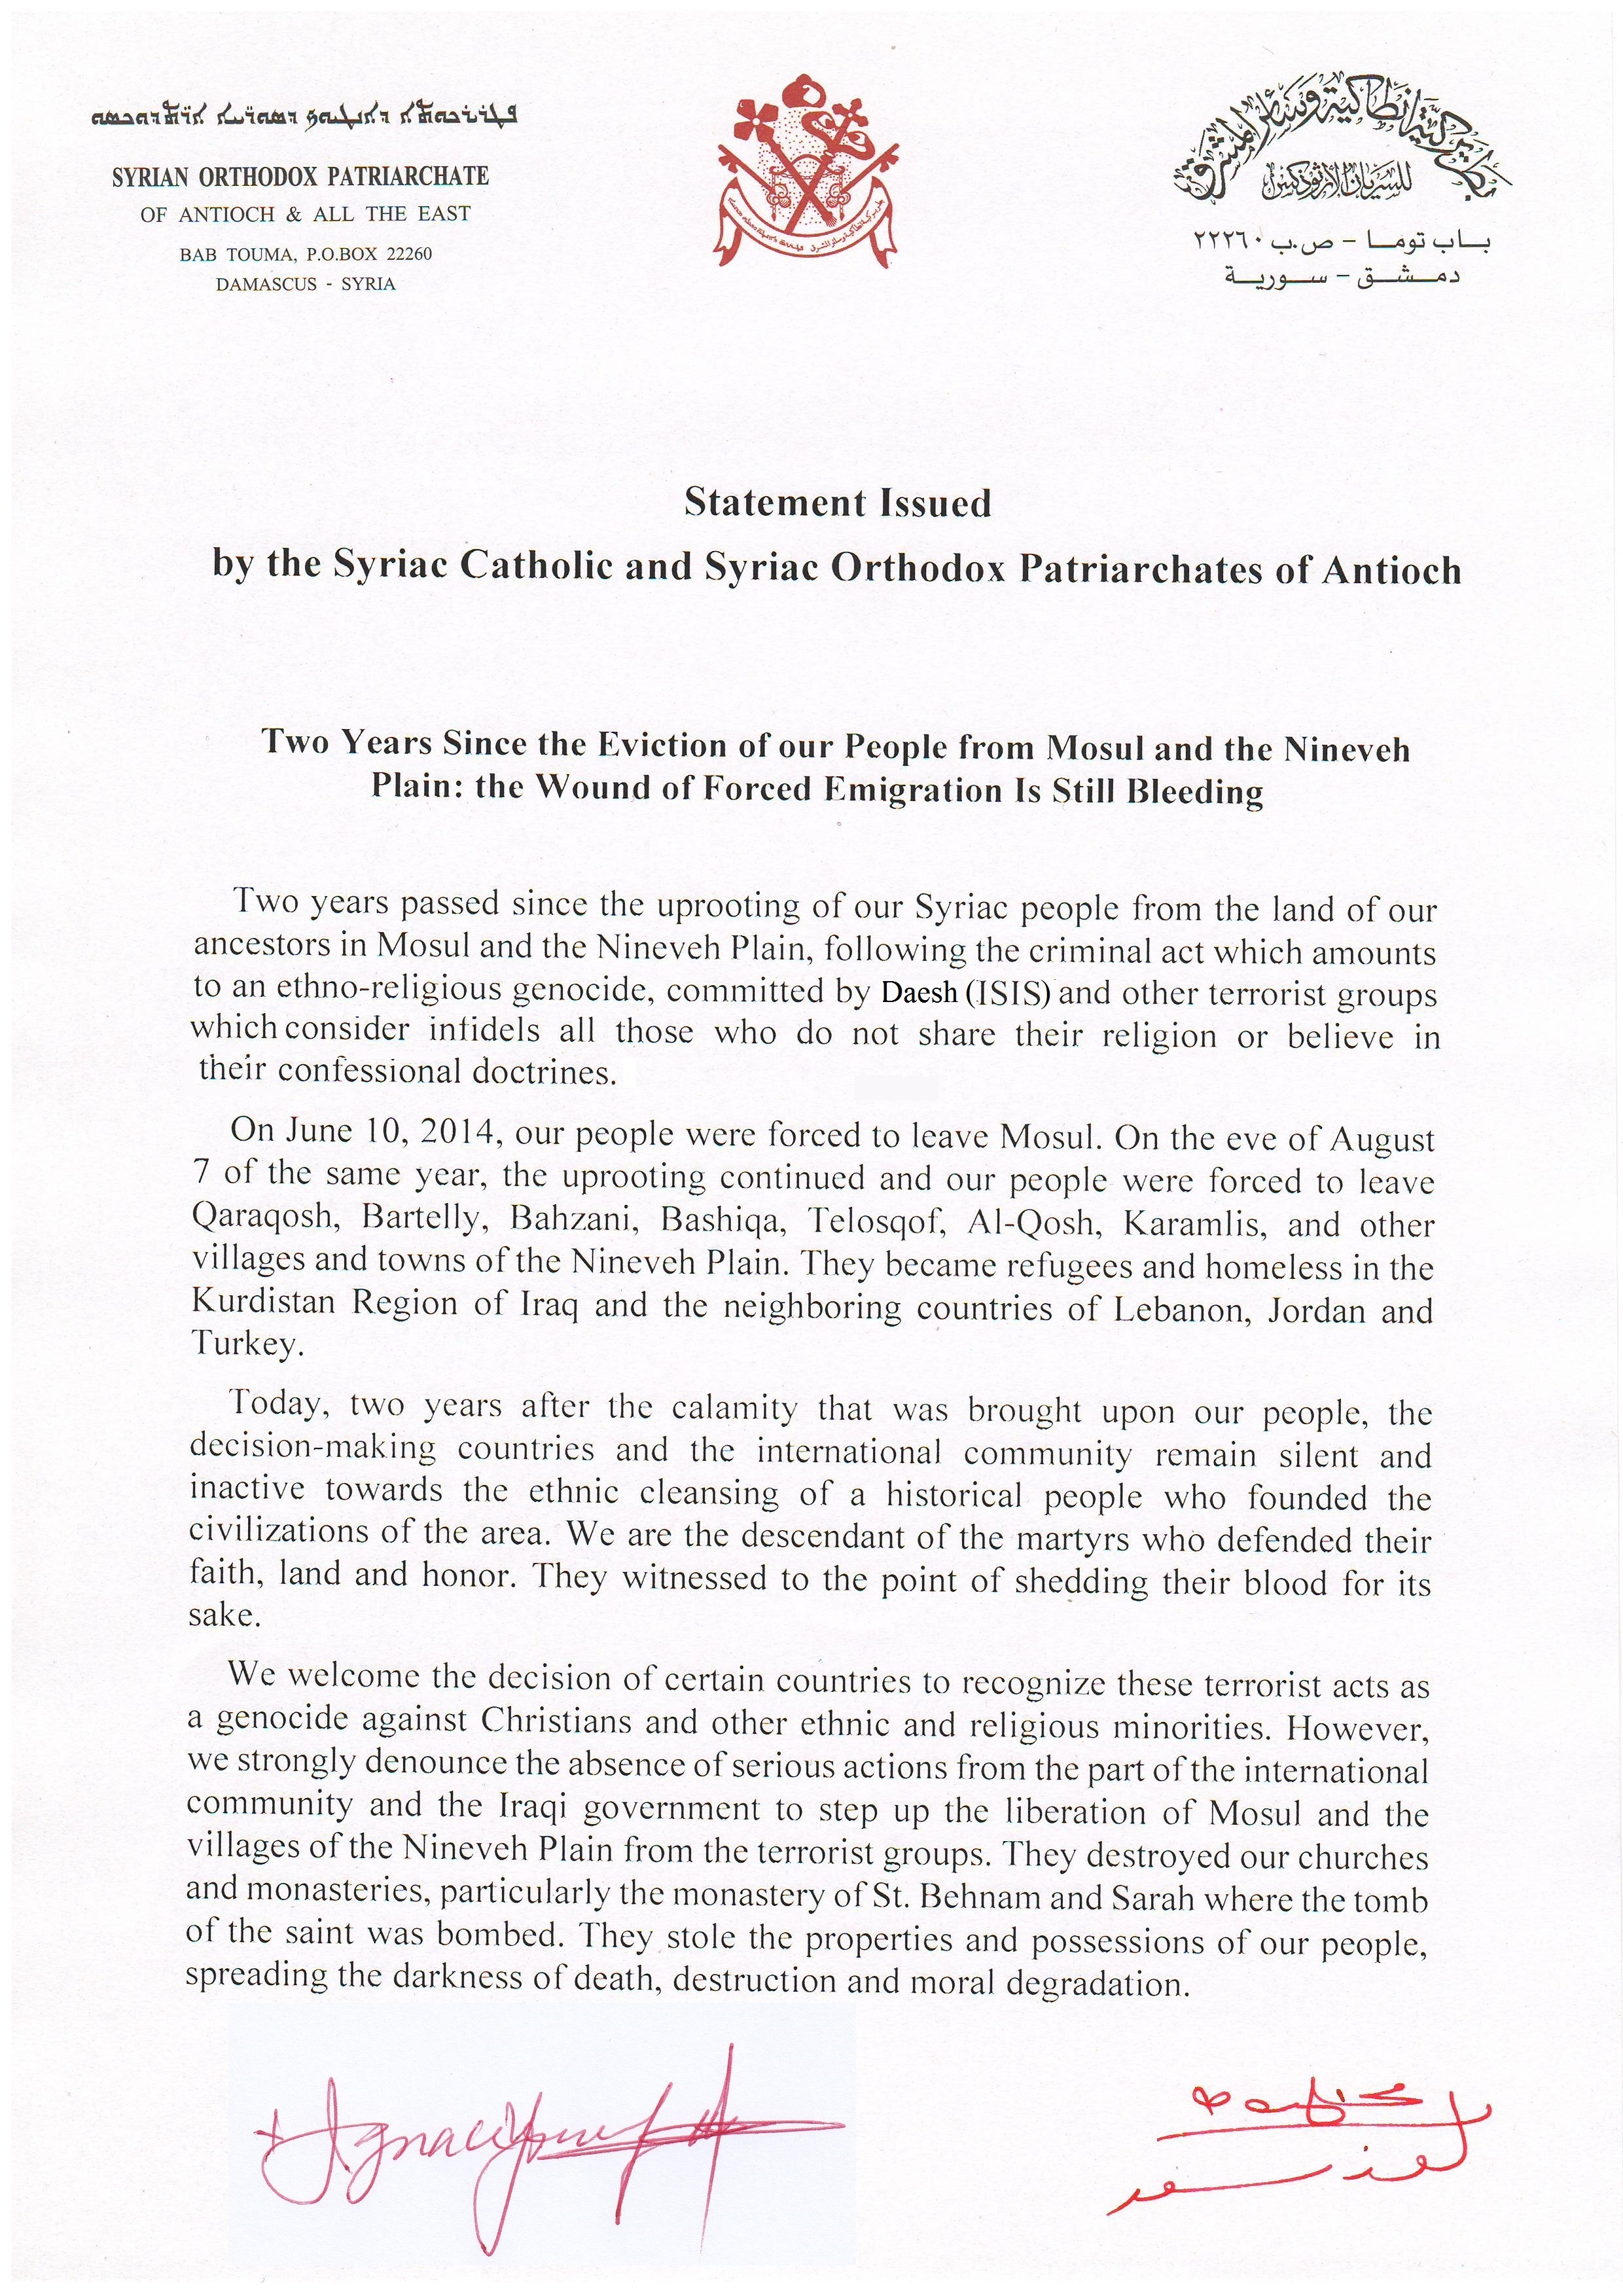 Statement by the Syriac Orthodox Patriarchate of Anthioch & Syriac Catholic Patriarchate on the Eviction of People from Mosul & the Nineveh Plain